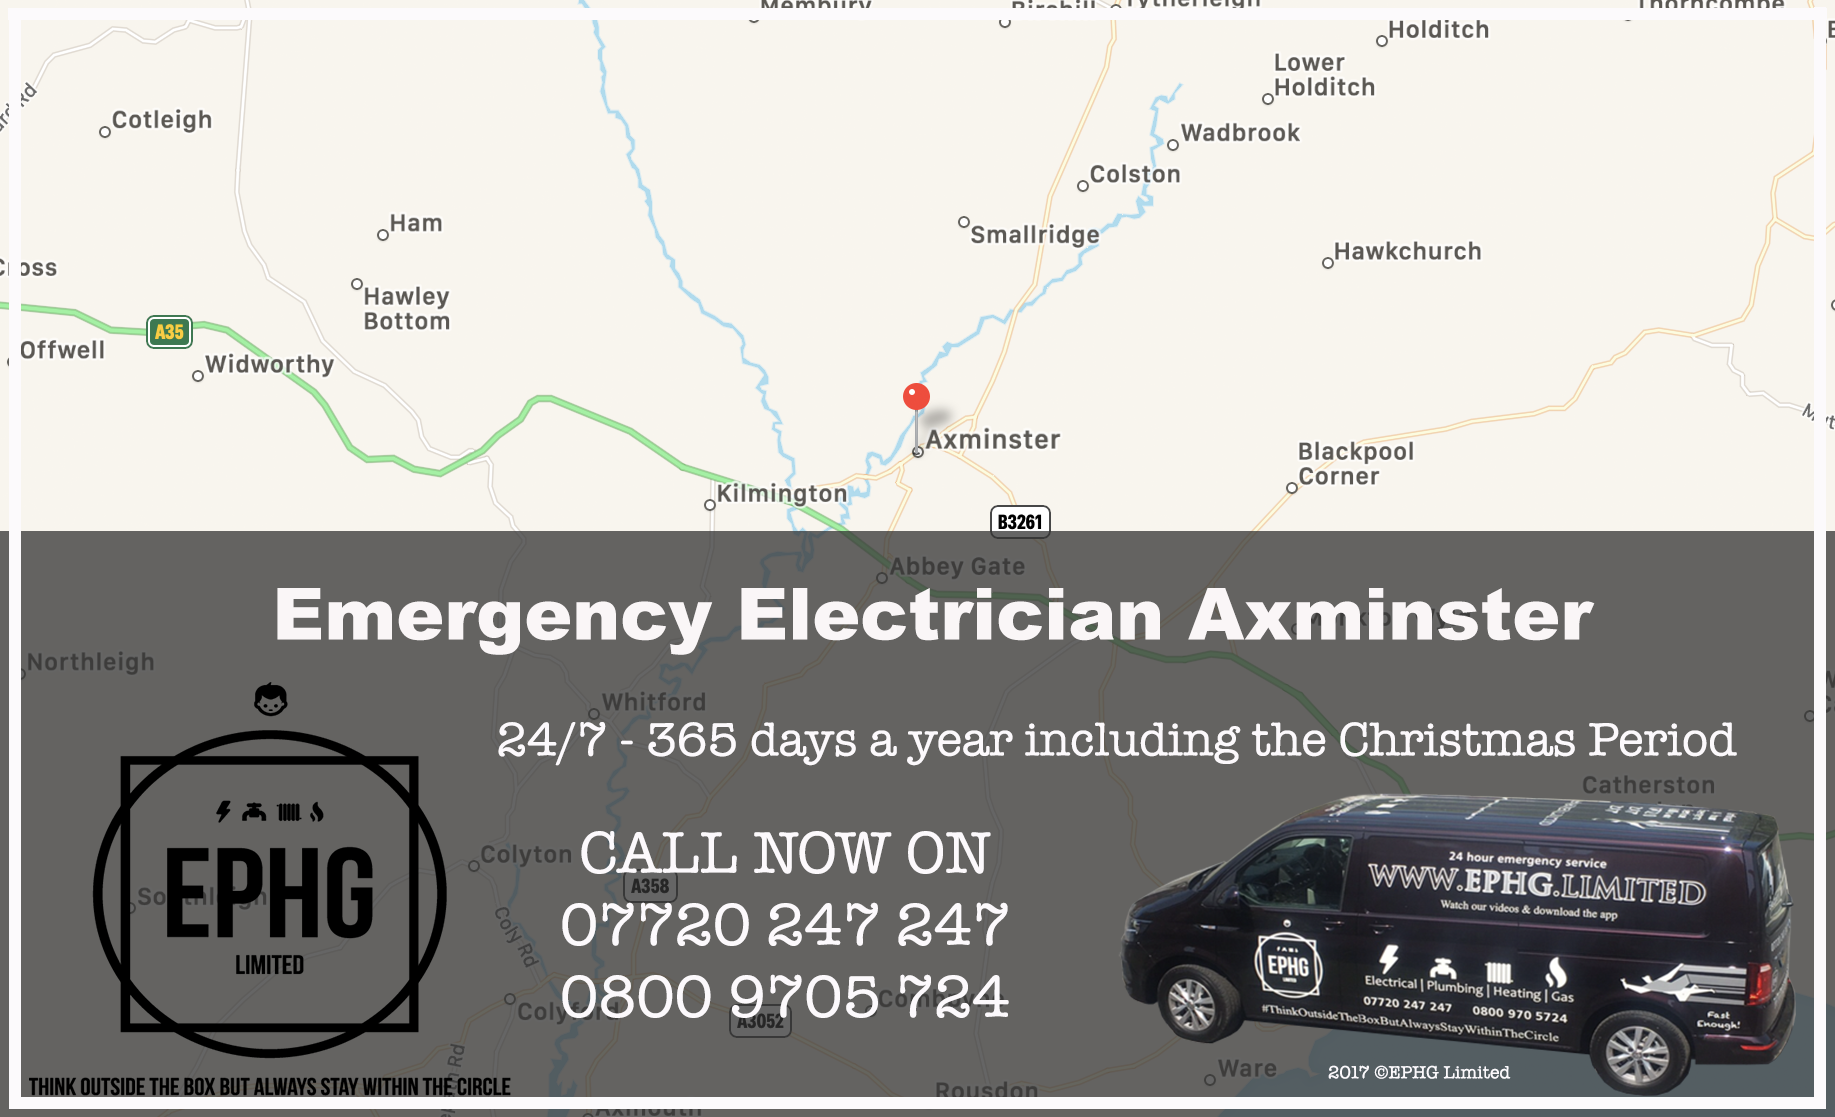 Emergency Electrician Axminster